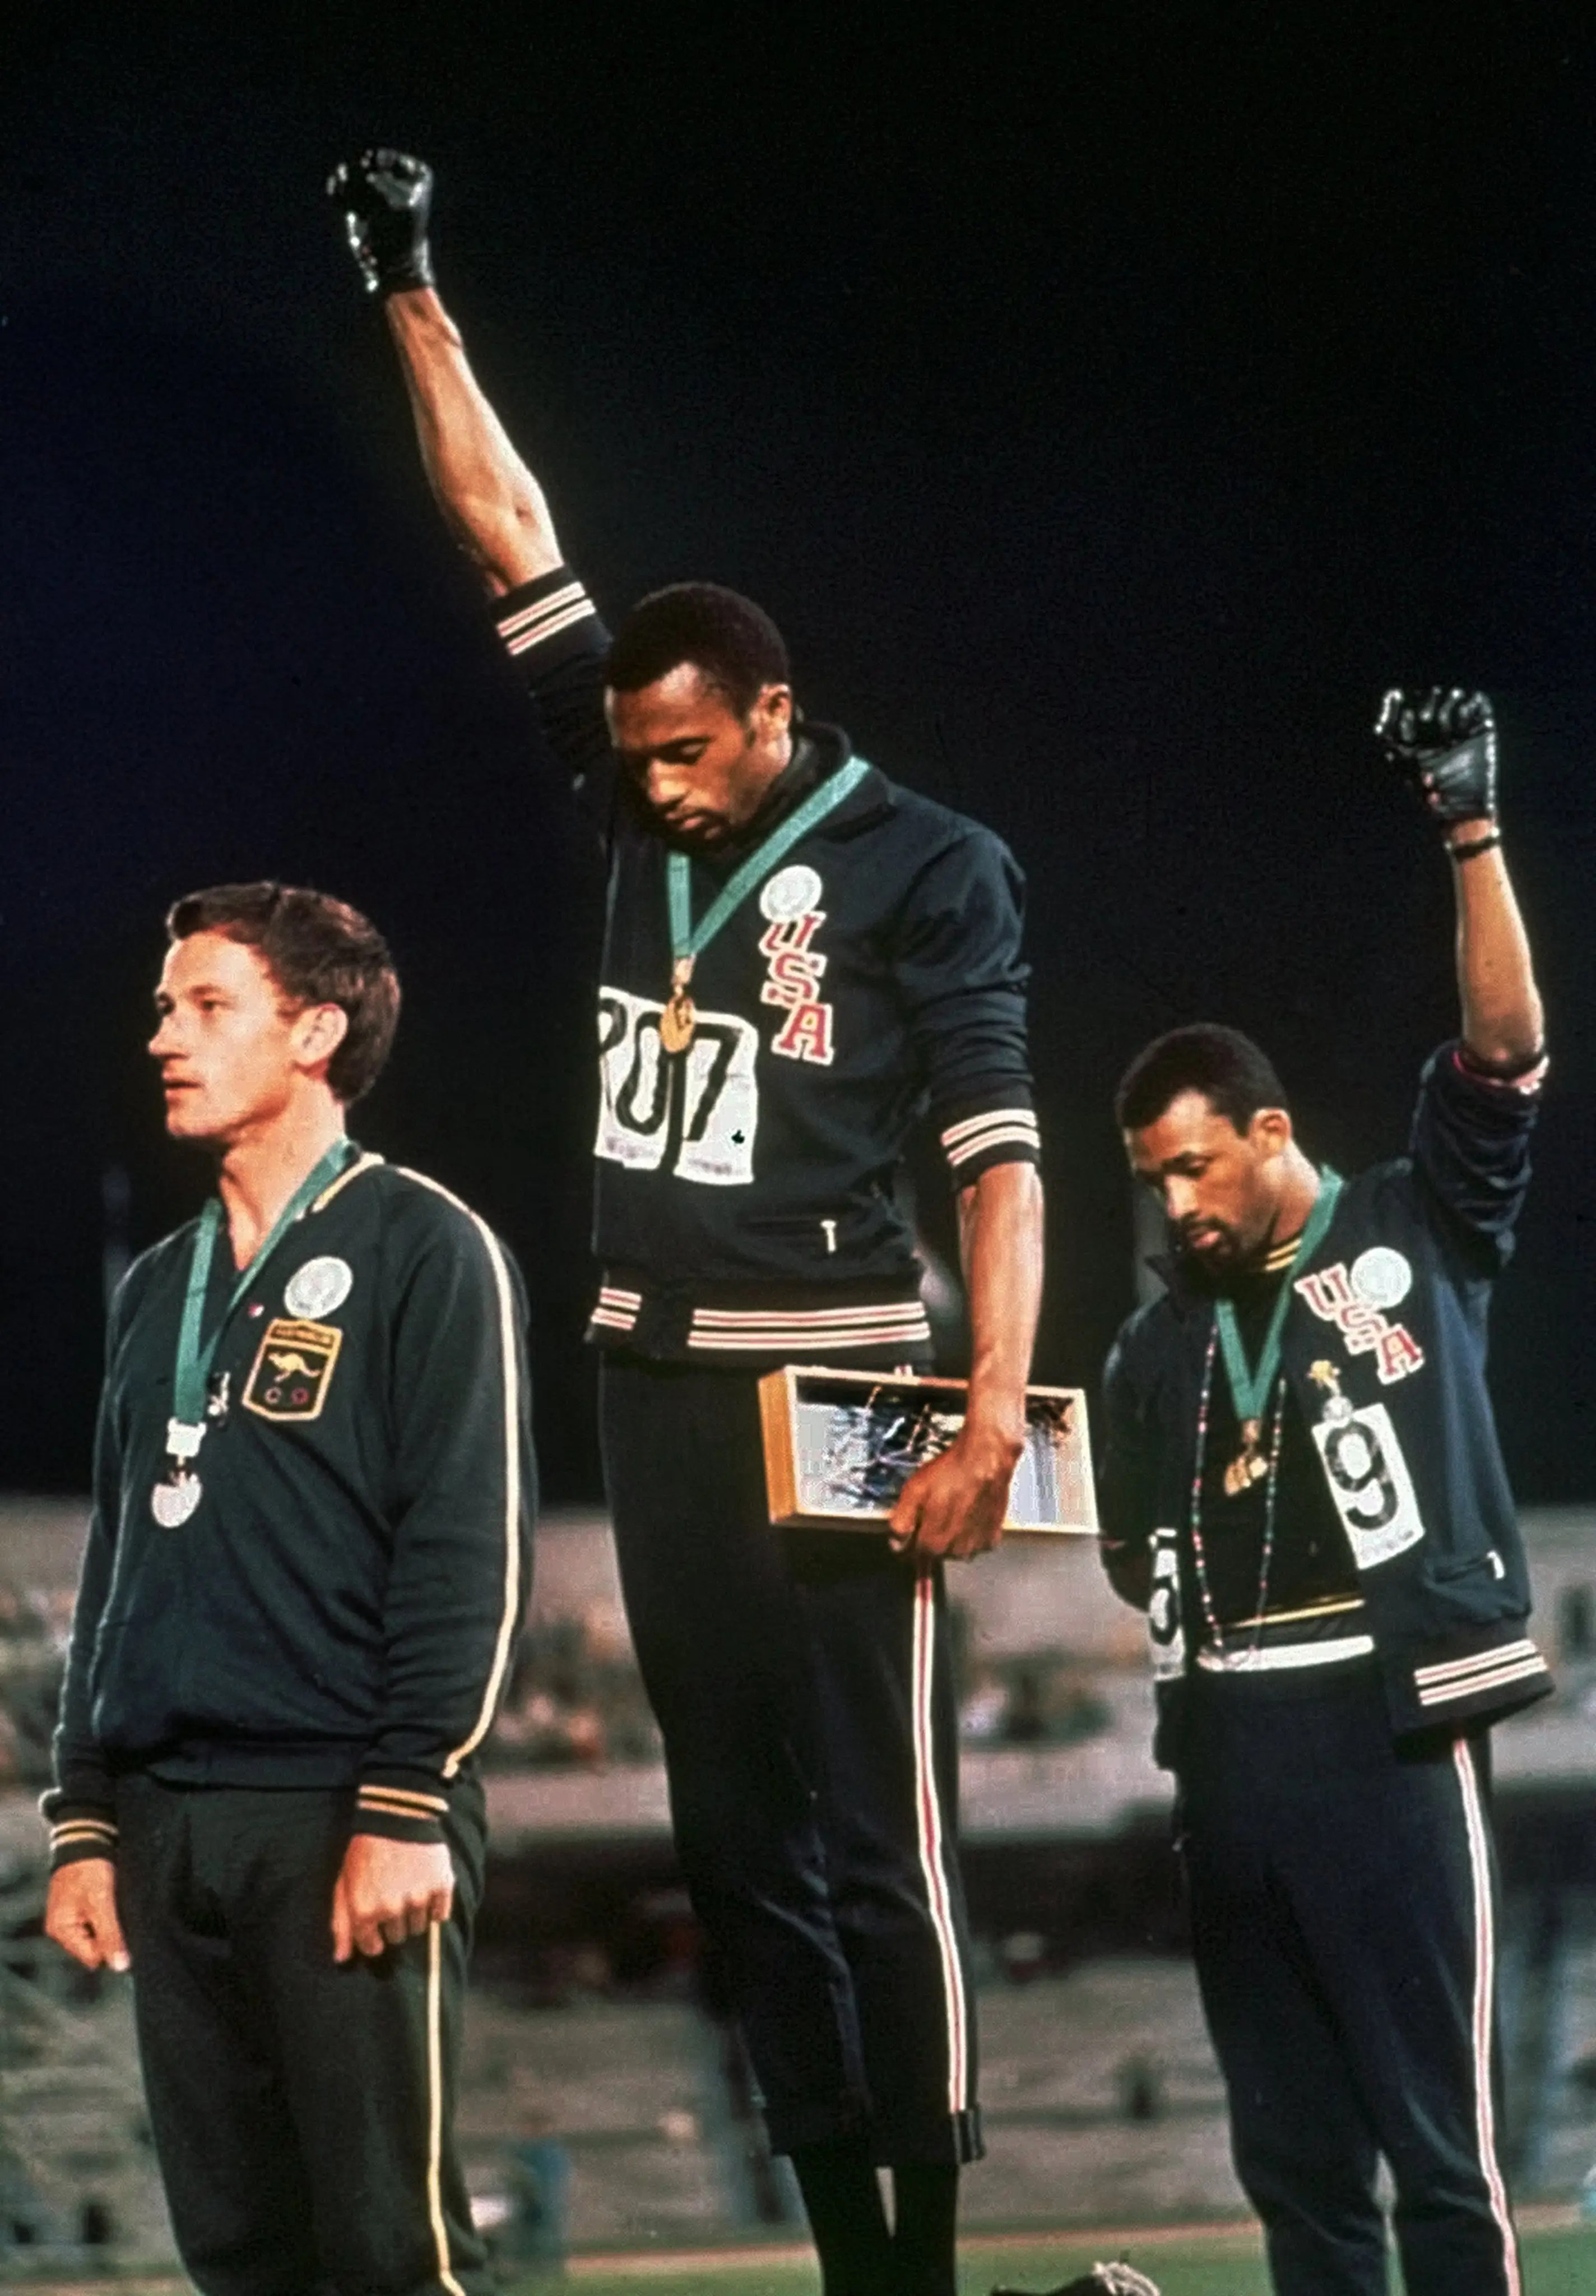 """Mexico, 1968: While on the podium, US medal winners Tommie Smith and John Carlos raised their fists in silent protest against the continued racial discrimination against black people in the US. They were booed by many people in the crowd and the International Olympic Committee condemned their actions, calling it """"a deliberate and violent breach of the fundamental principles of the Olympic spirit."""""""